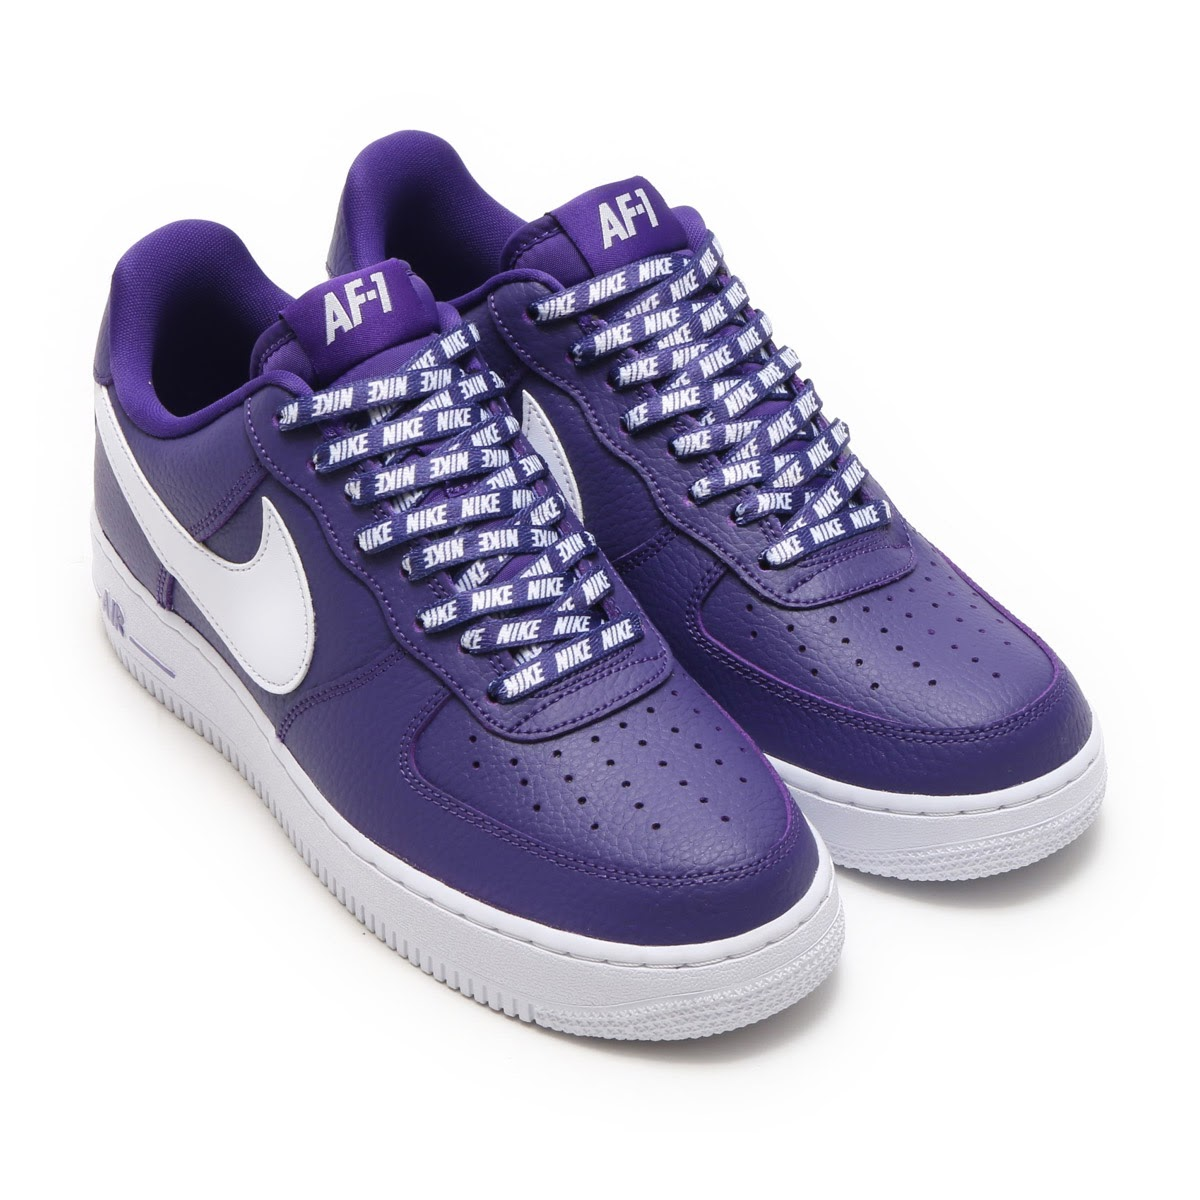 NIKE AIR FORCE 1 '07 LV8(ナイキ エア フォース 1 '07 LV8)(COURT PURPLE/WHITE)17HO-S